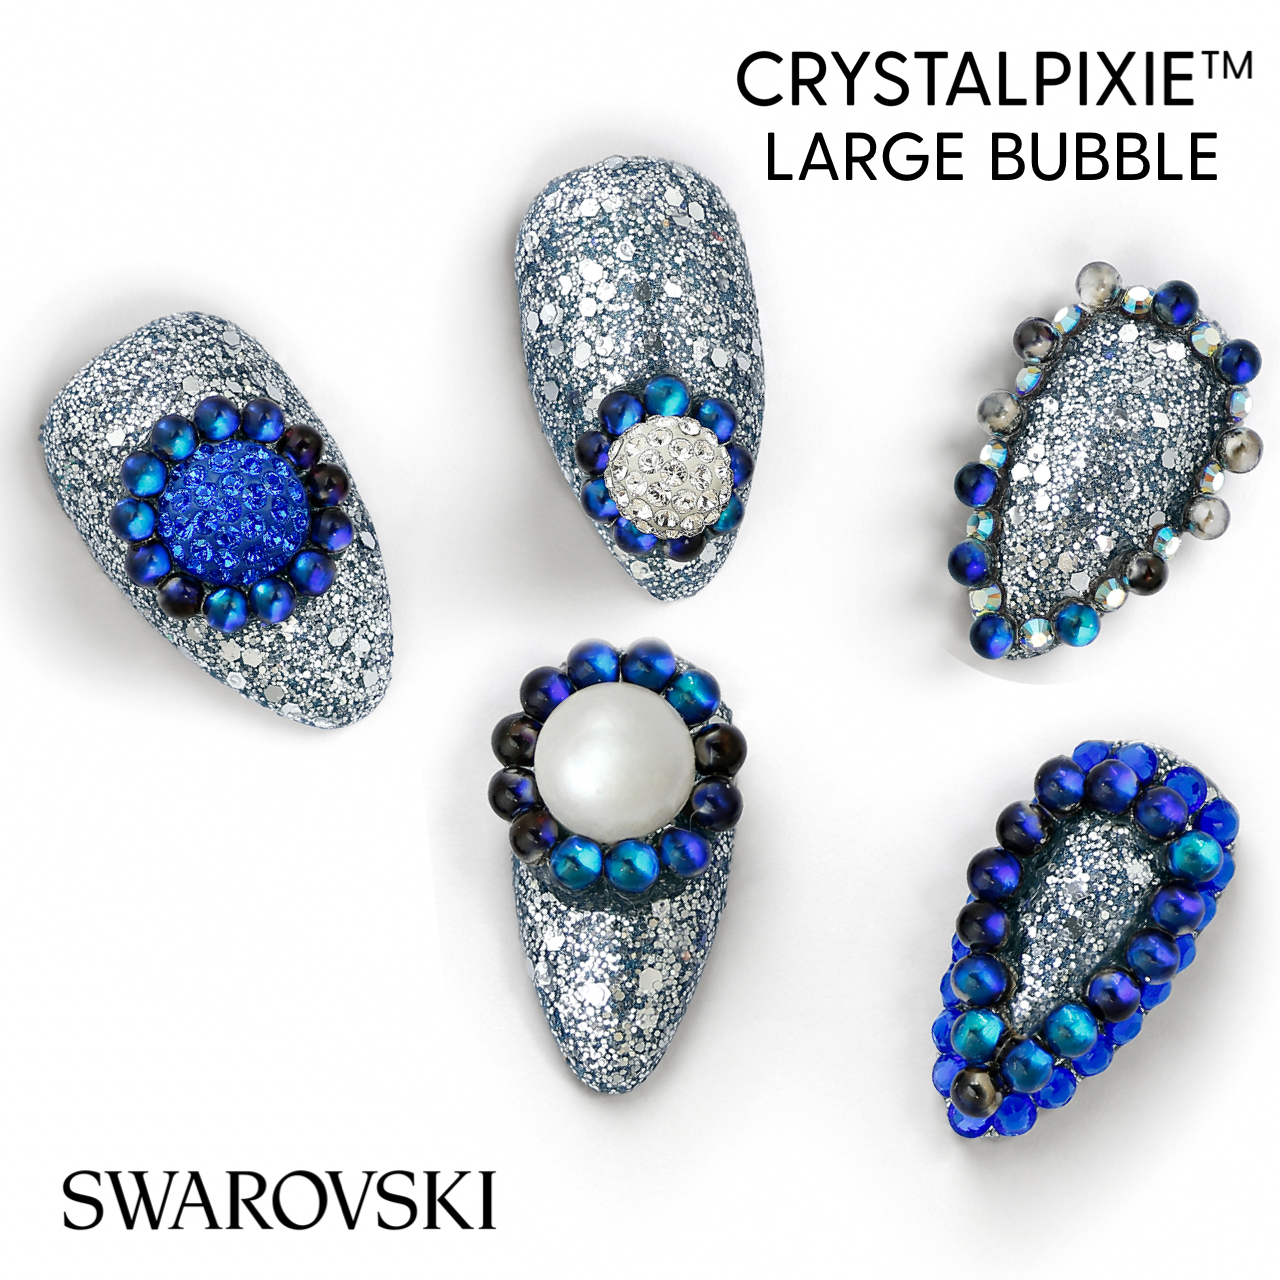 Swarovski CrystalPixie Bubble Large